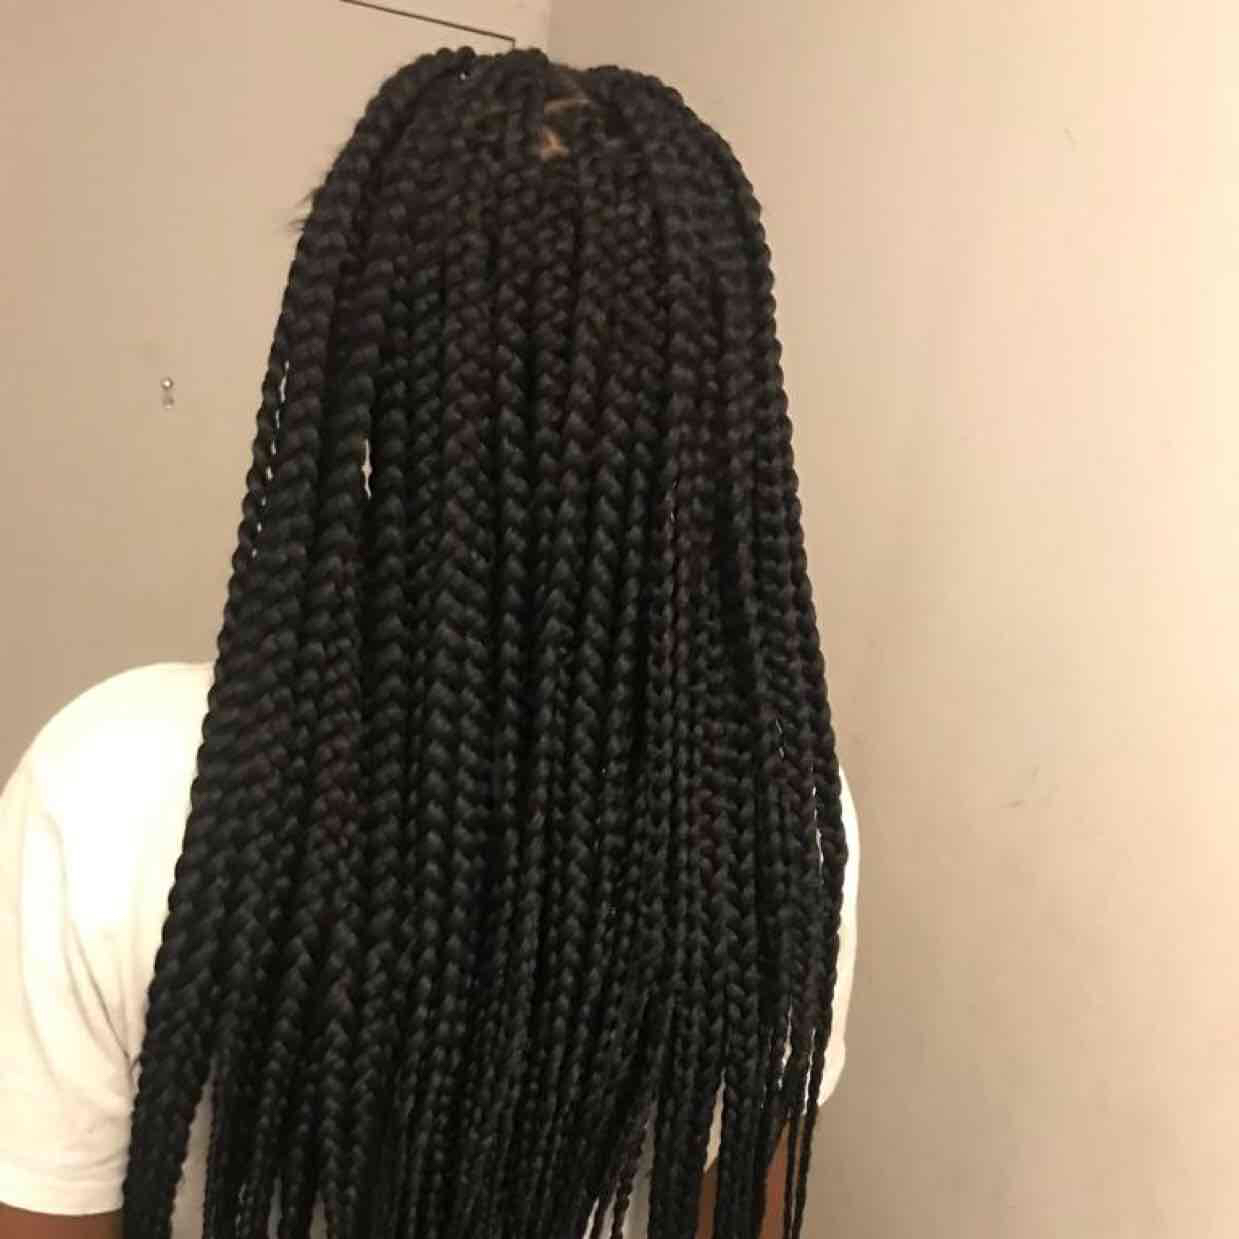 salon de coiffure afro tresse tresses box braids crochet braids vanilles tissages paris 75 77 78 91 92 93 94 95 MTNYMLFH